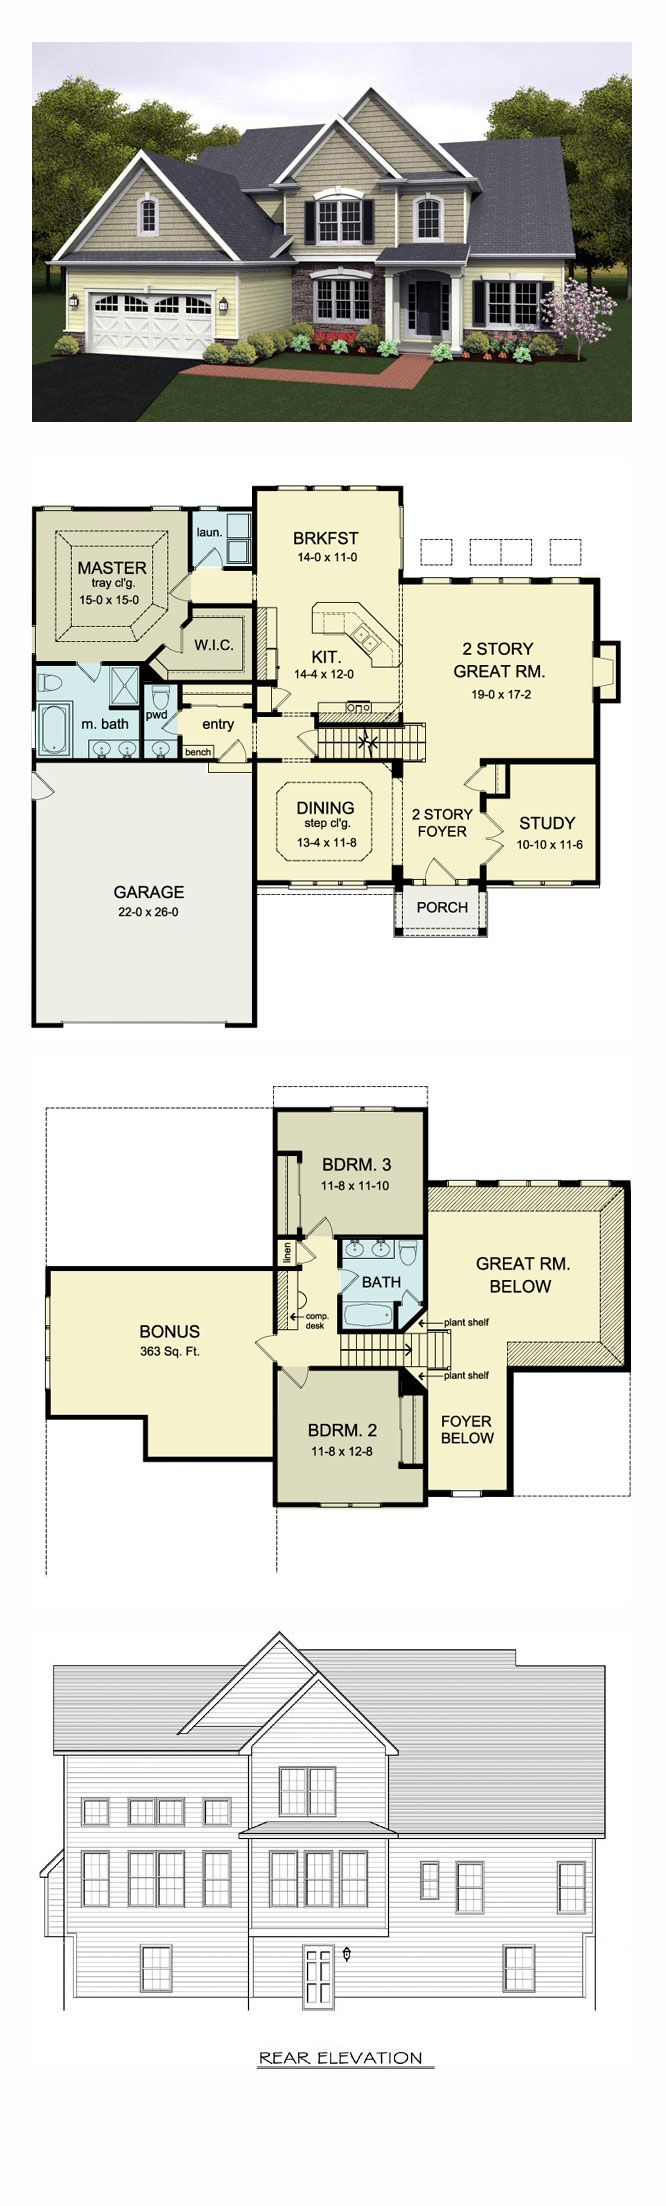 6 Bedroom House Plans besides Watch moreover 331859066263096473 additionally Gun Room Traditional Basement Toronto in addition Handy Designs And Craft Ideas For Home 2. on 2 car garage design ideas